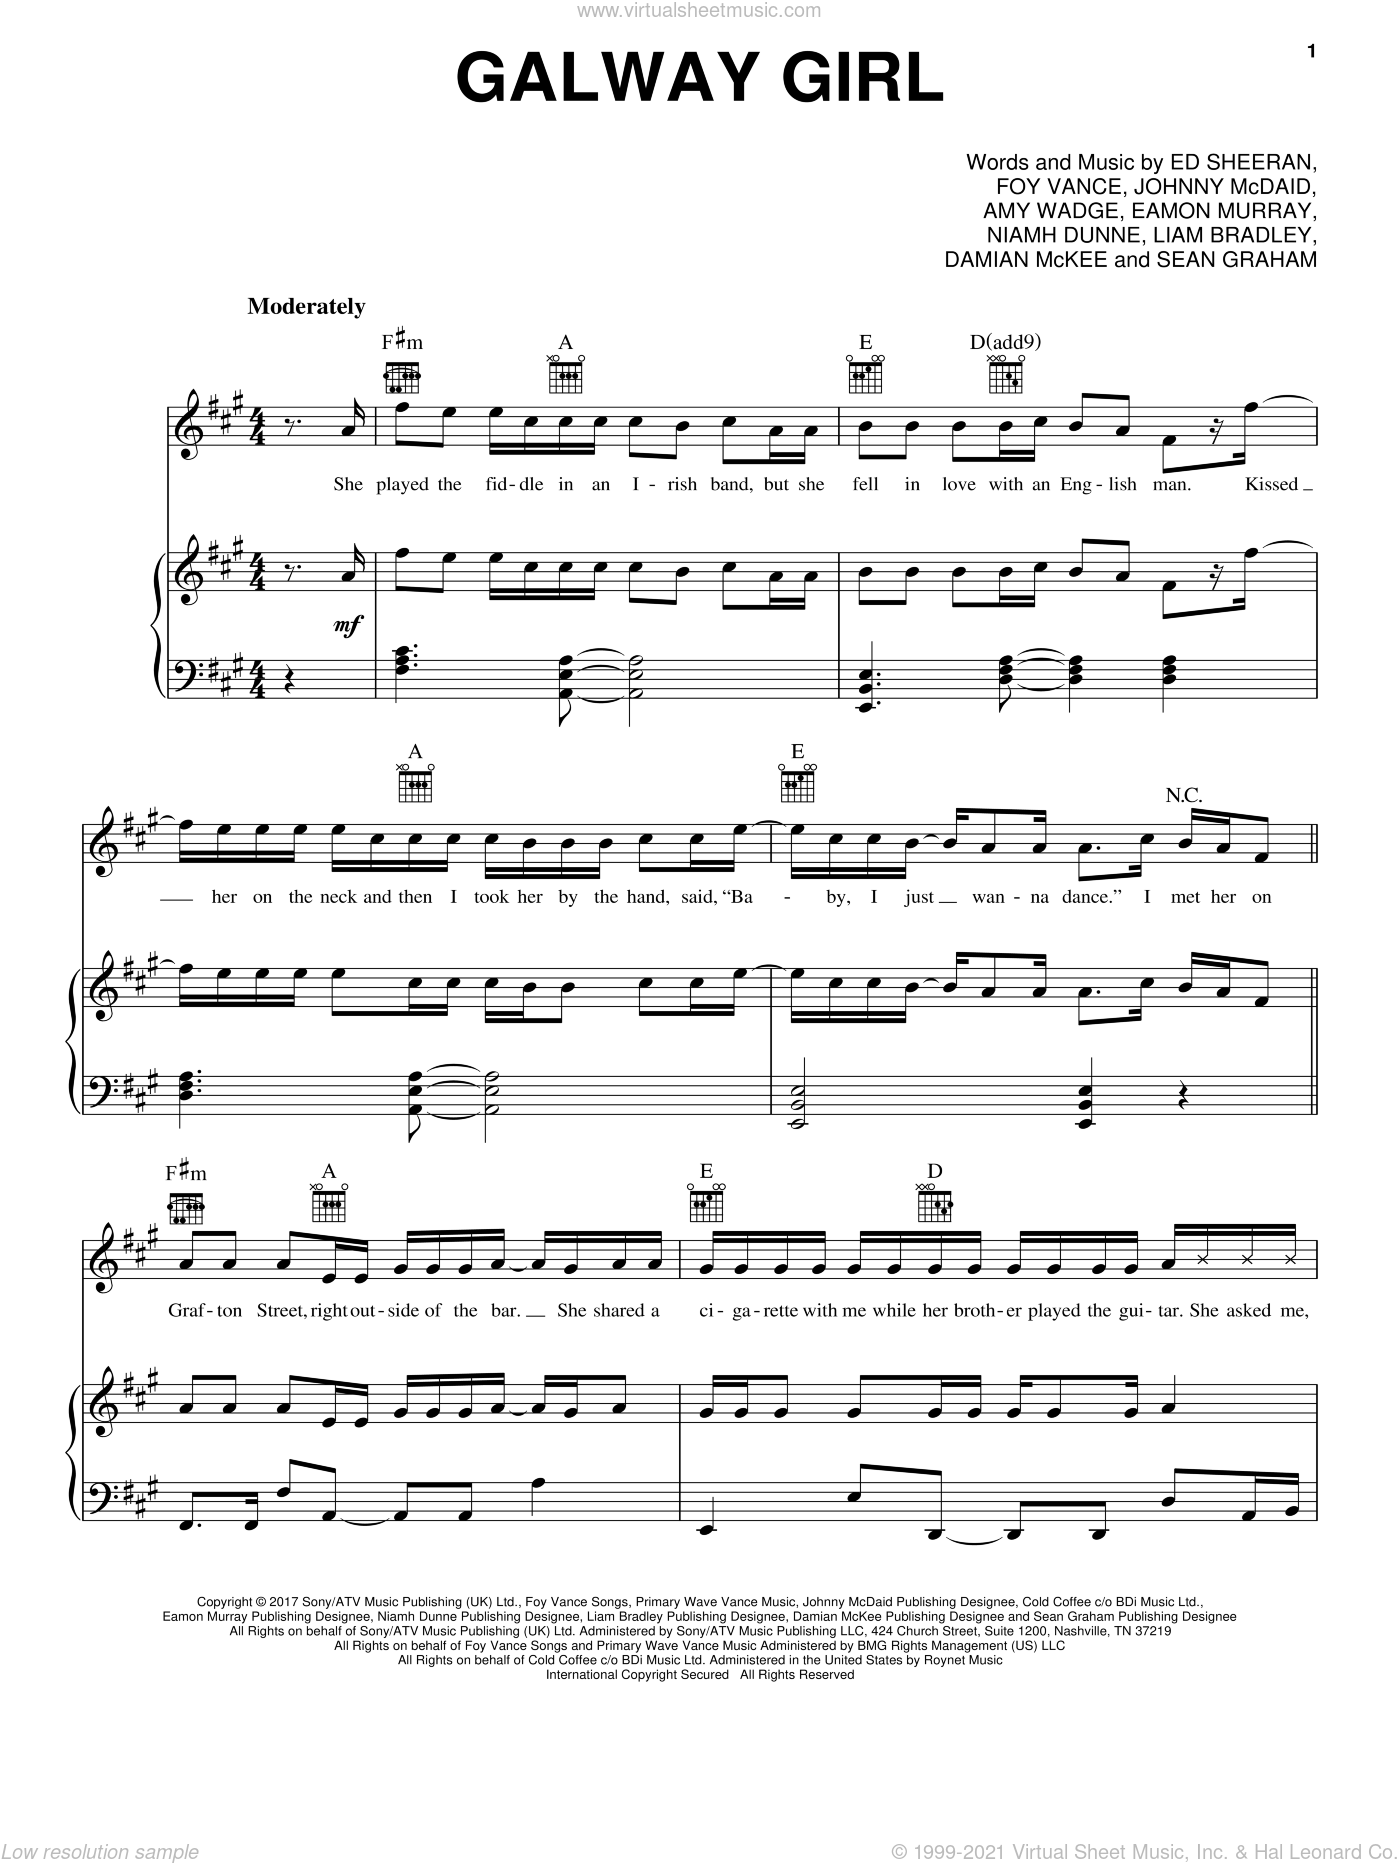 Galway Girl sheet music for voice, piano or guitar by Ed Sheeran, Amy Wadge, Damian McKee, Eamon Murray, Foy Vance, Johnny McDaid, Liam Bradley, Niamh Dunne and Sean Graham, intermediate skill level